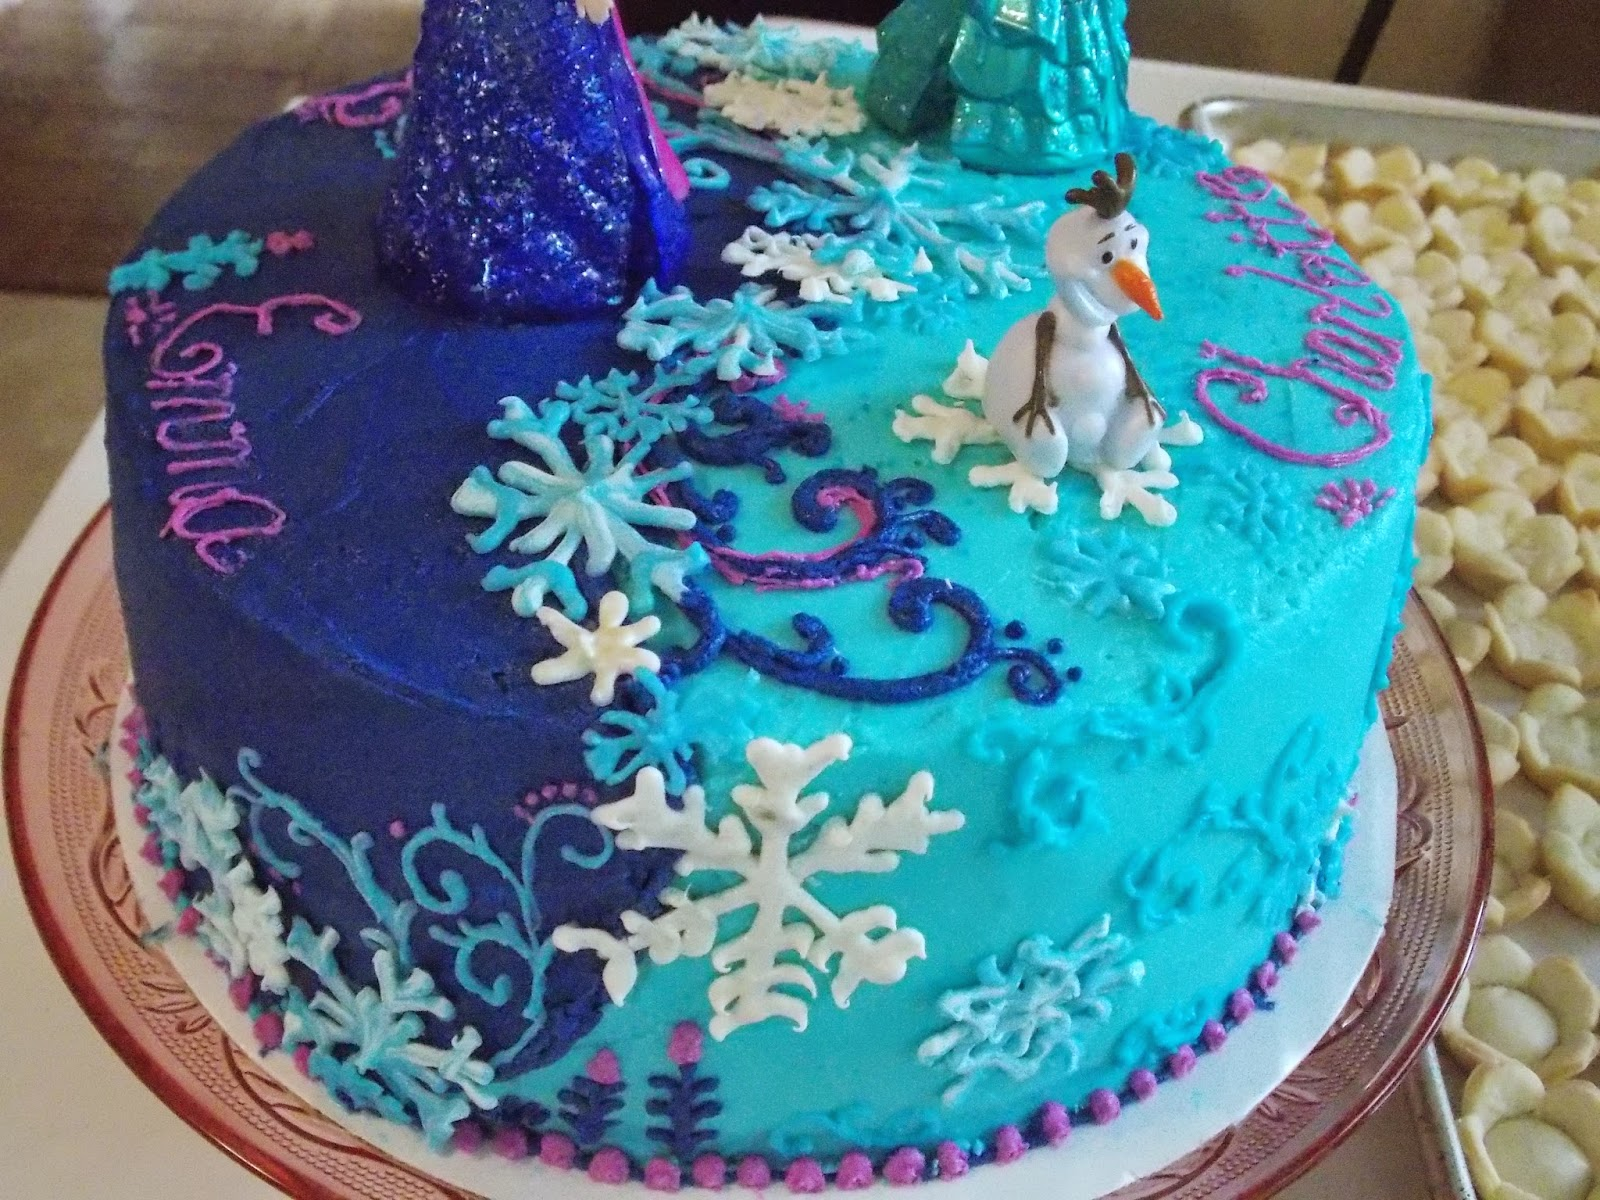 Dawns Divine Delights Frozen Inspired Cake for Two Sisters